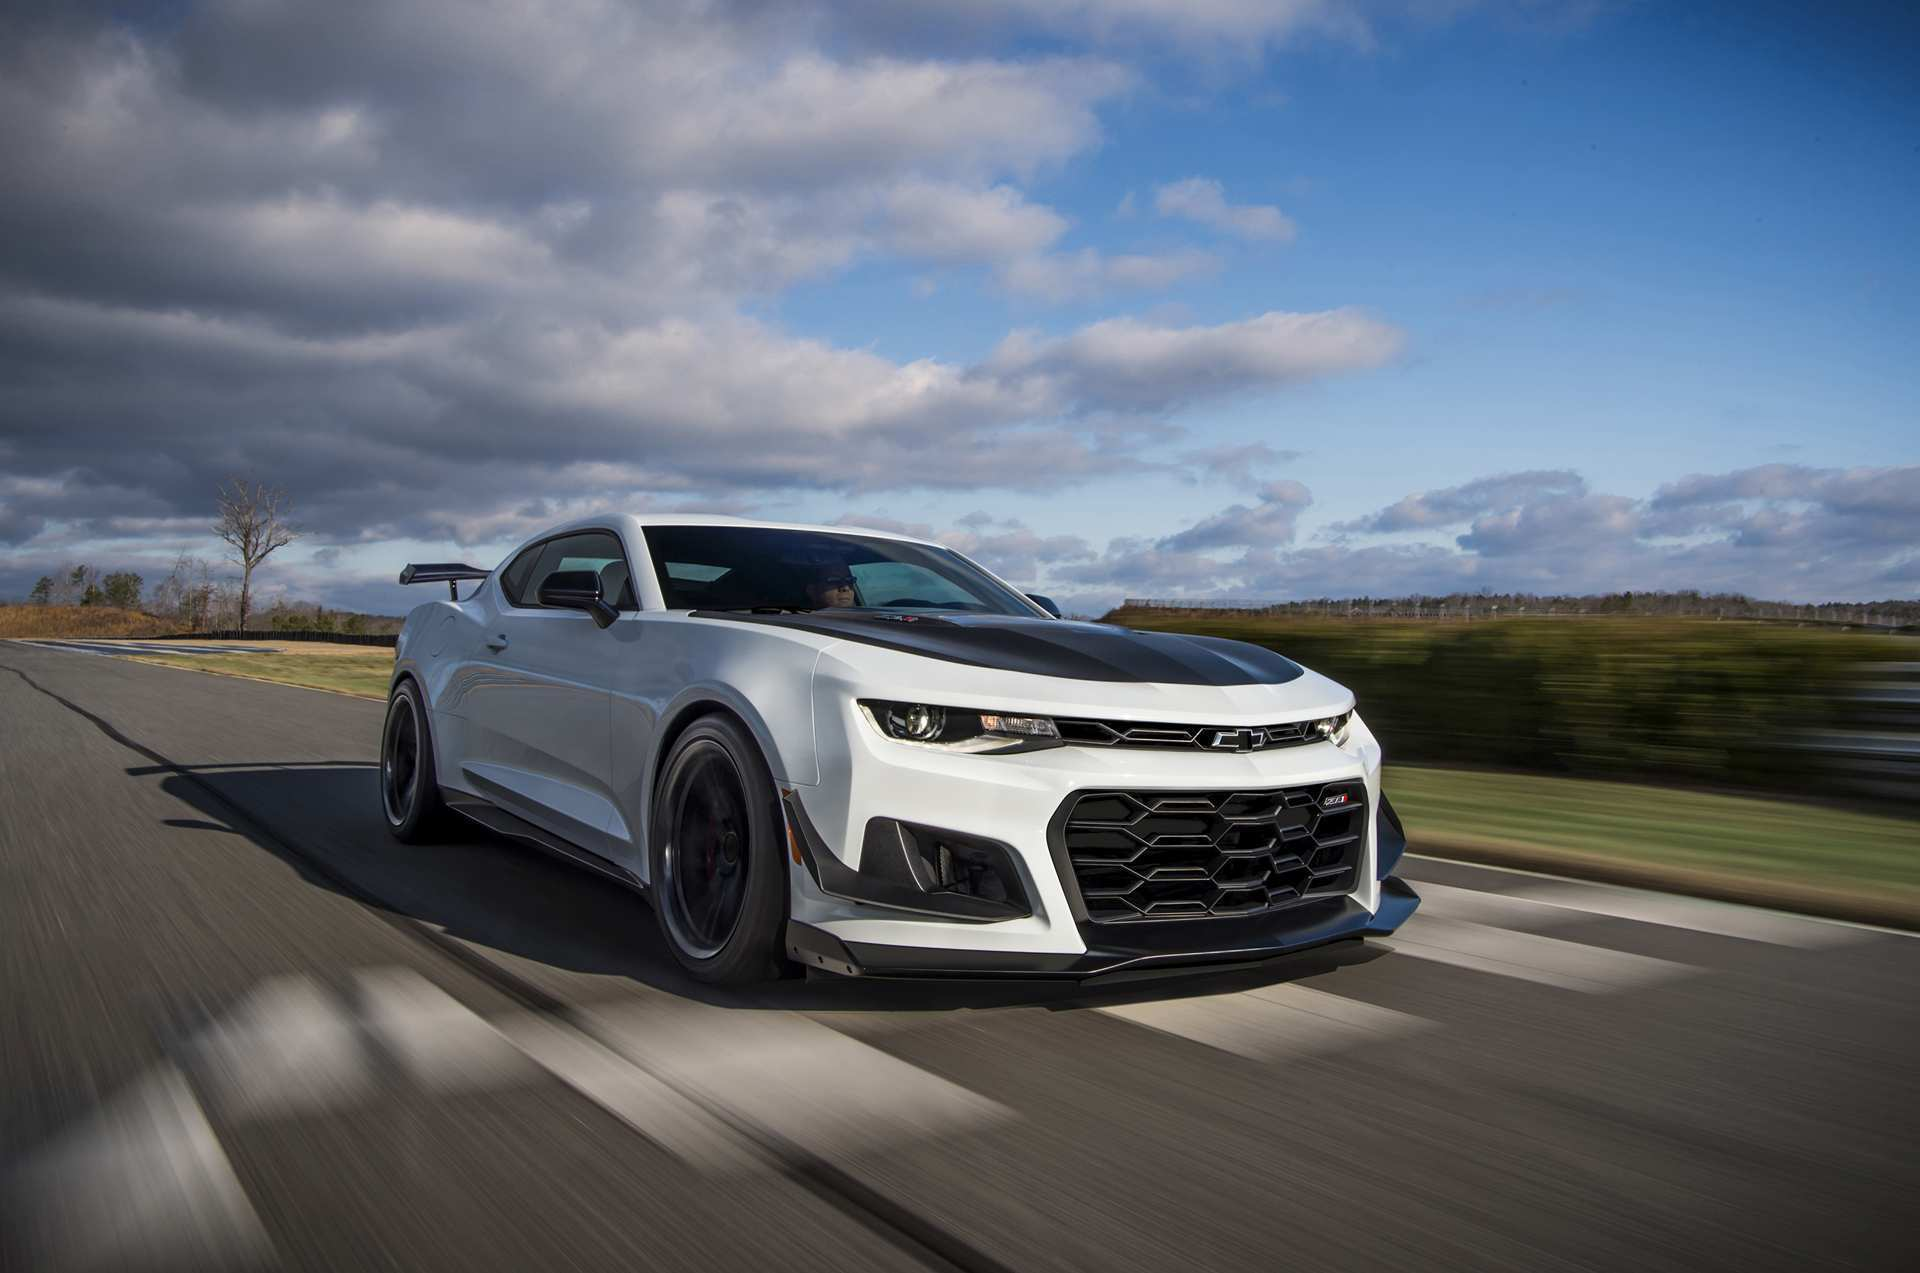 61 The Best 2020 Chevrolet Camaro Z28 Configurations